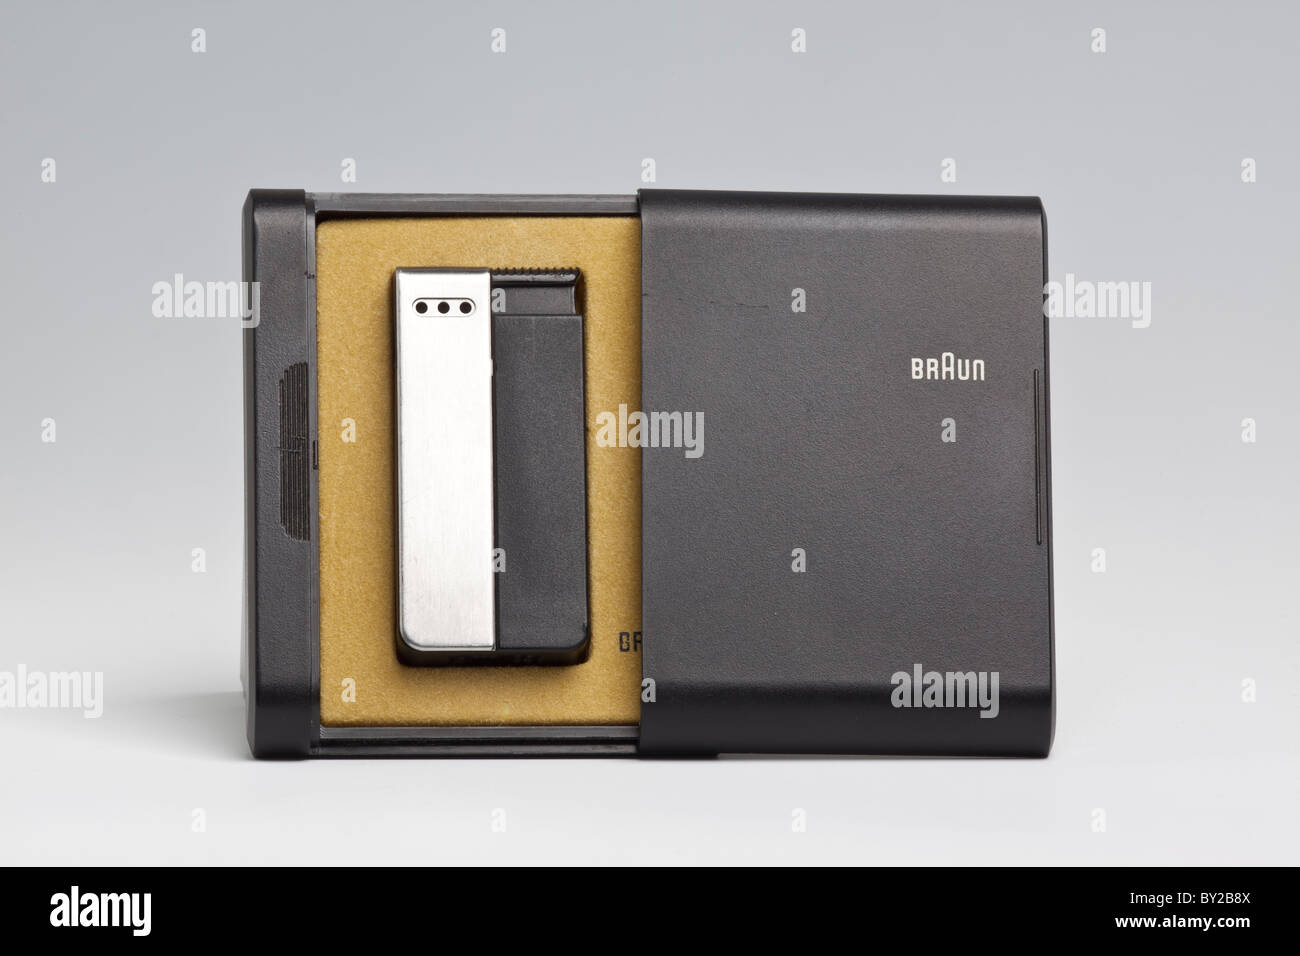 Duo pocket lighter, made by Braun, designed by Busse Design Ulm, 1977 - Stock Image